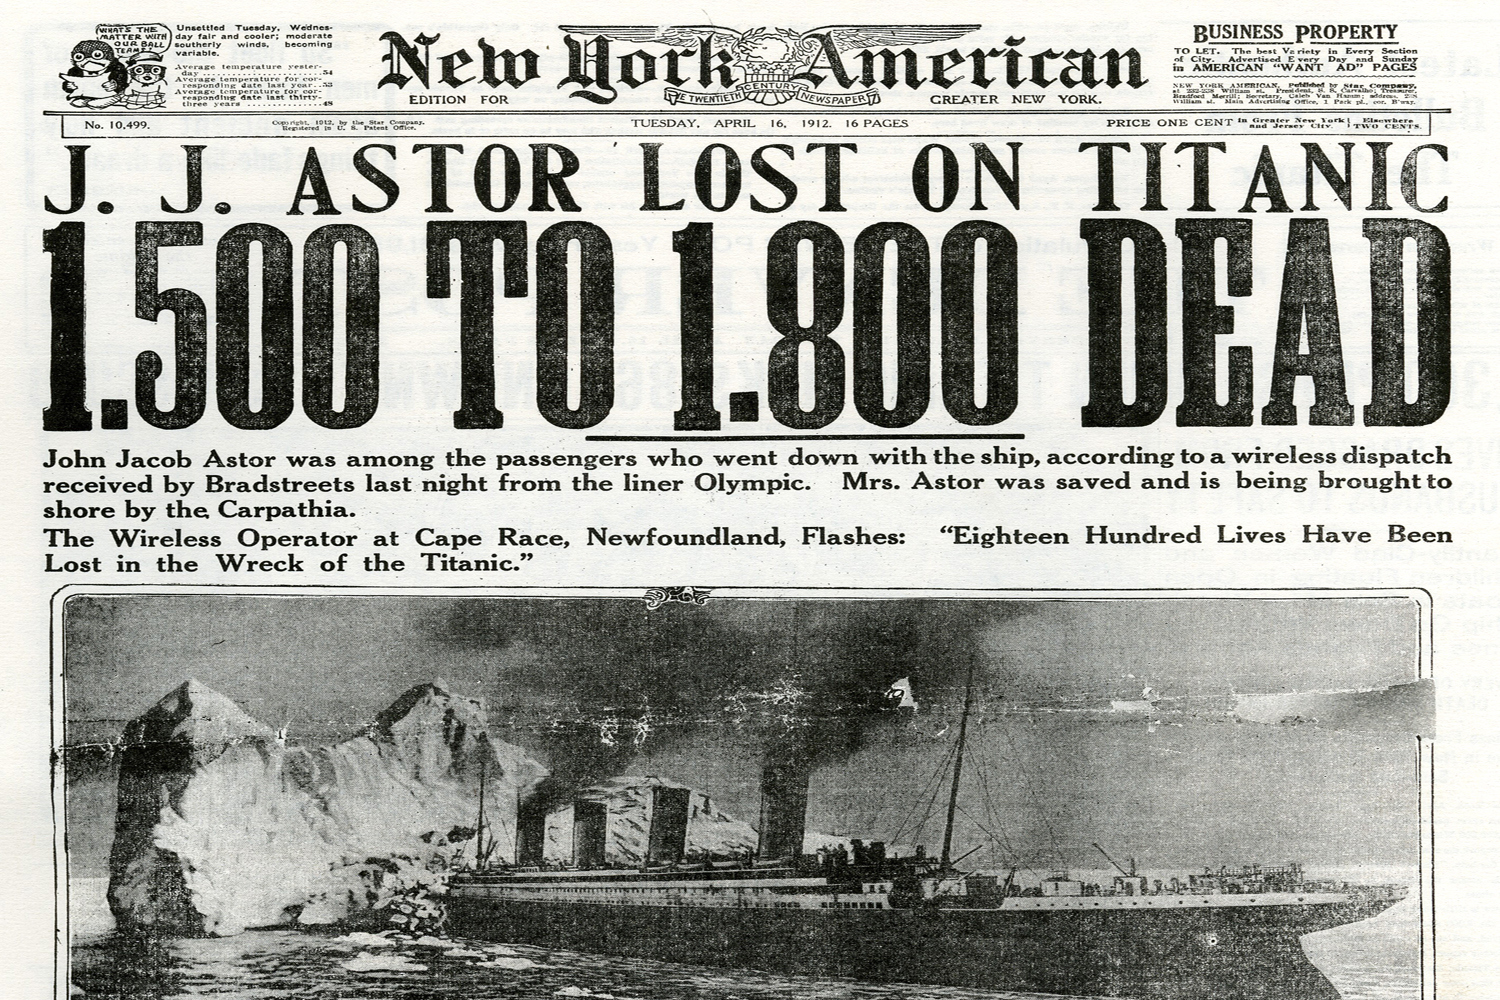 The sinking of the Titanic led to the creation of the U.S. Federal Reserve 9